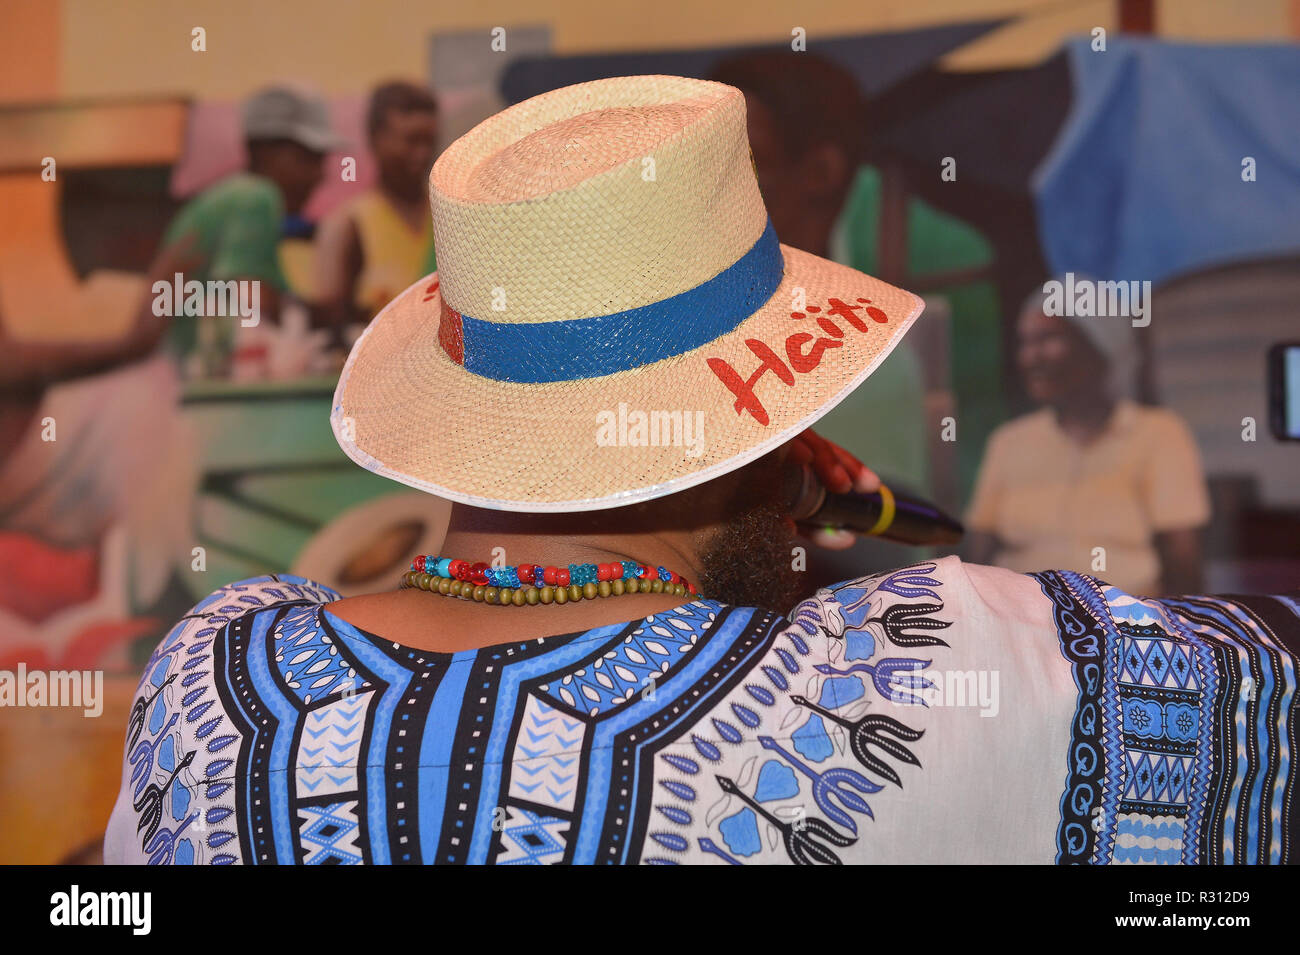 Little Haiti Stock Photos & Little Haiti Stock Images - Alamy